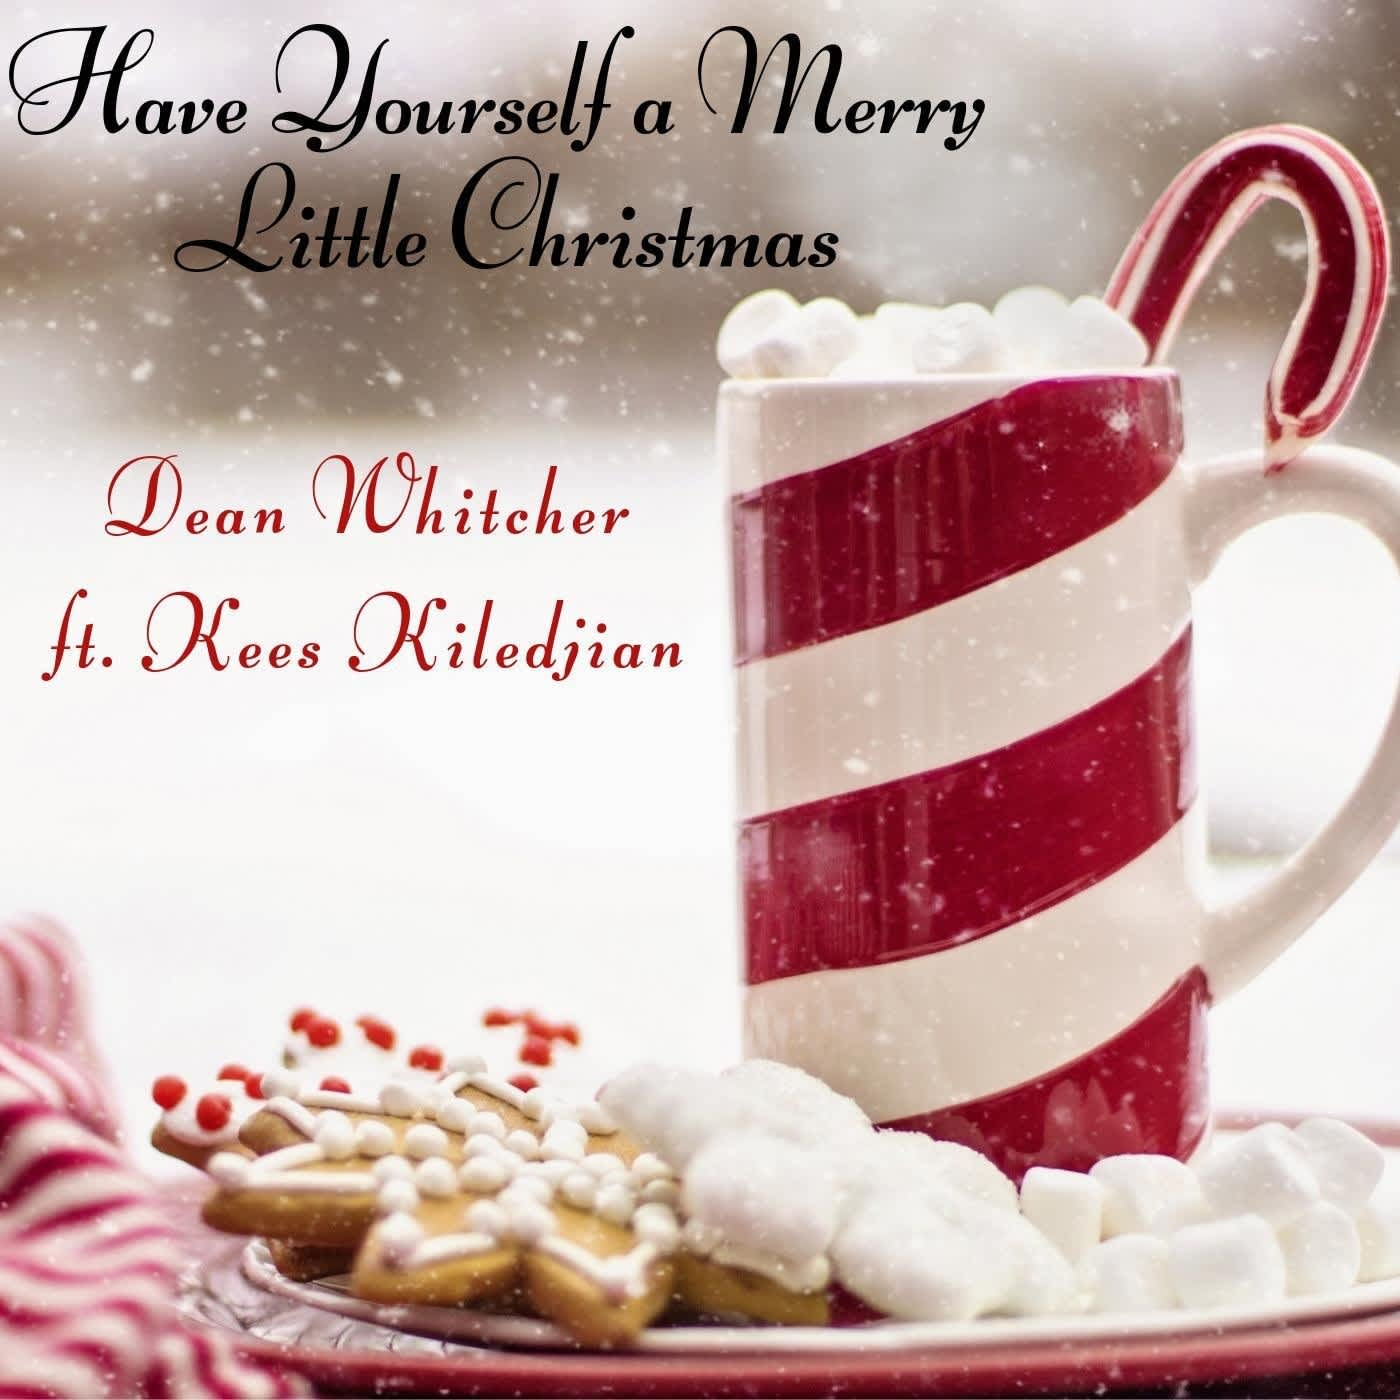 Have Yourself a Merry Little Christmas (feat. Kees Kiledjian)